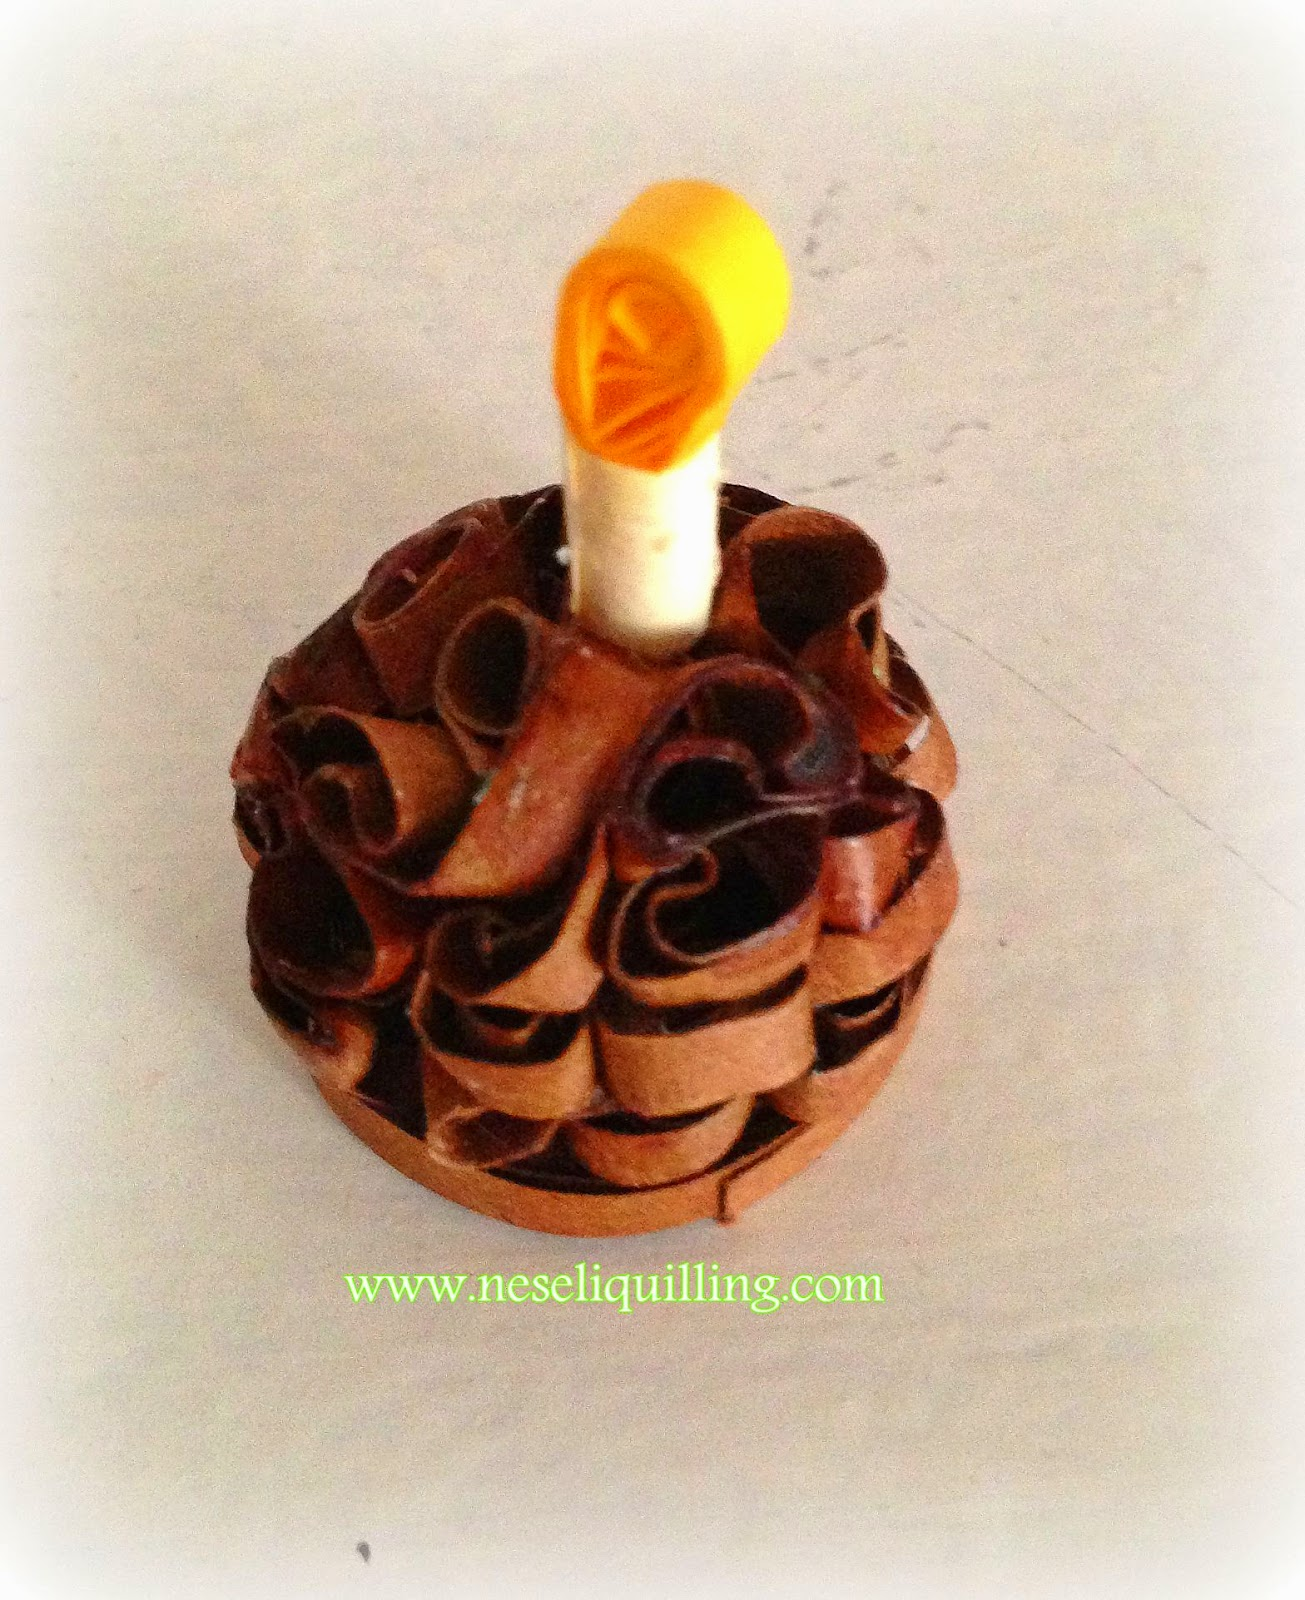 quilling birthday cake